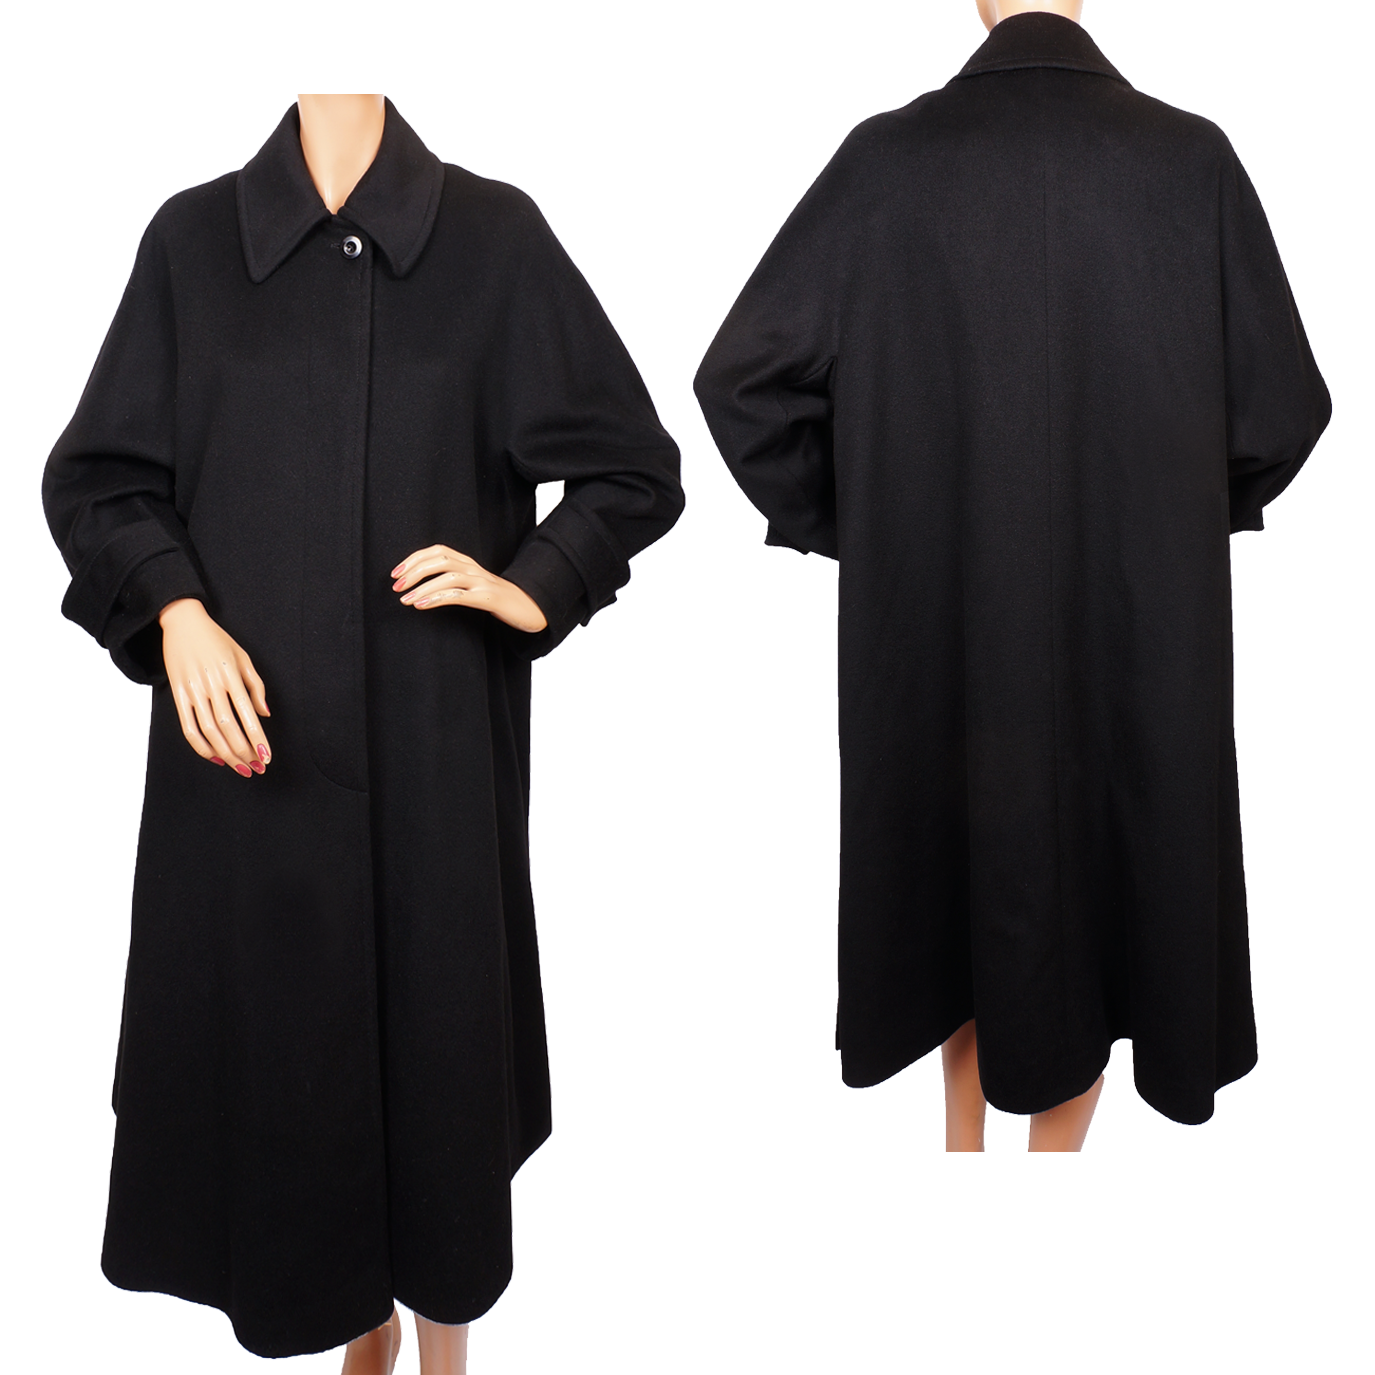 Vintage 80s Black Cashmere Coat Ladies Size 8 from ...